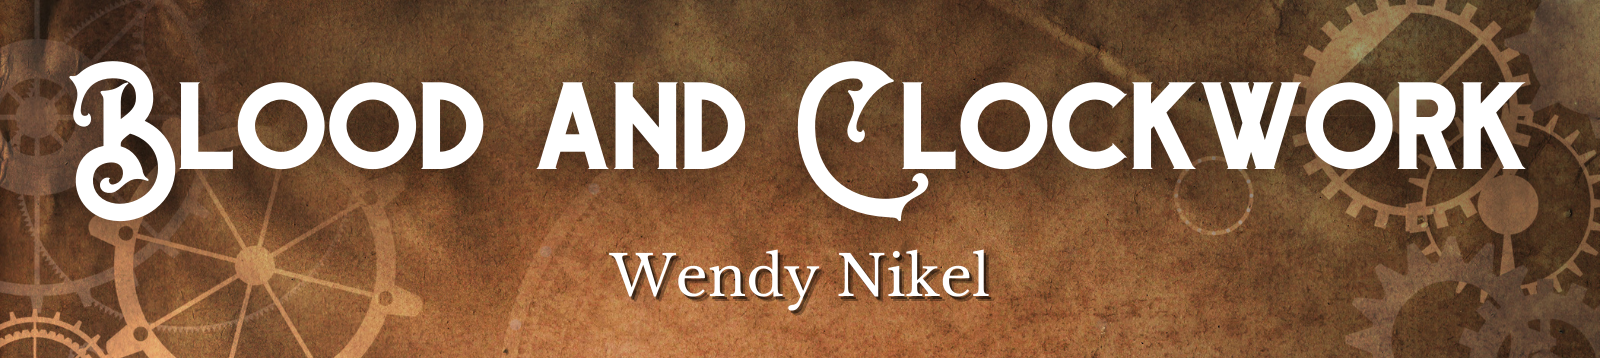 Blood and Clockwork by Wendy Nikel